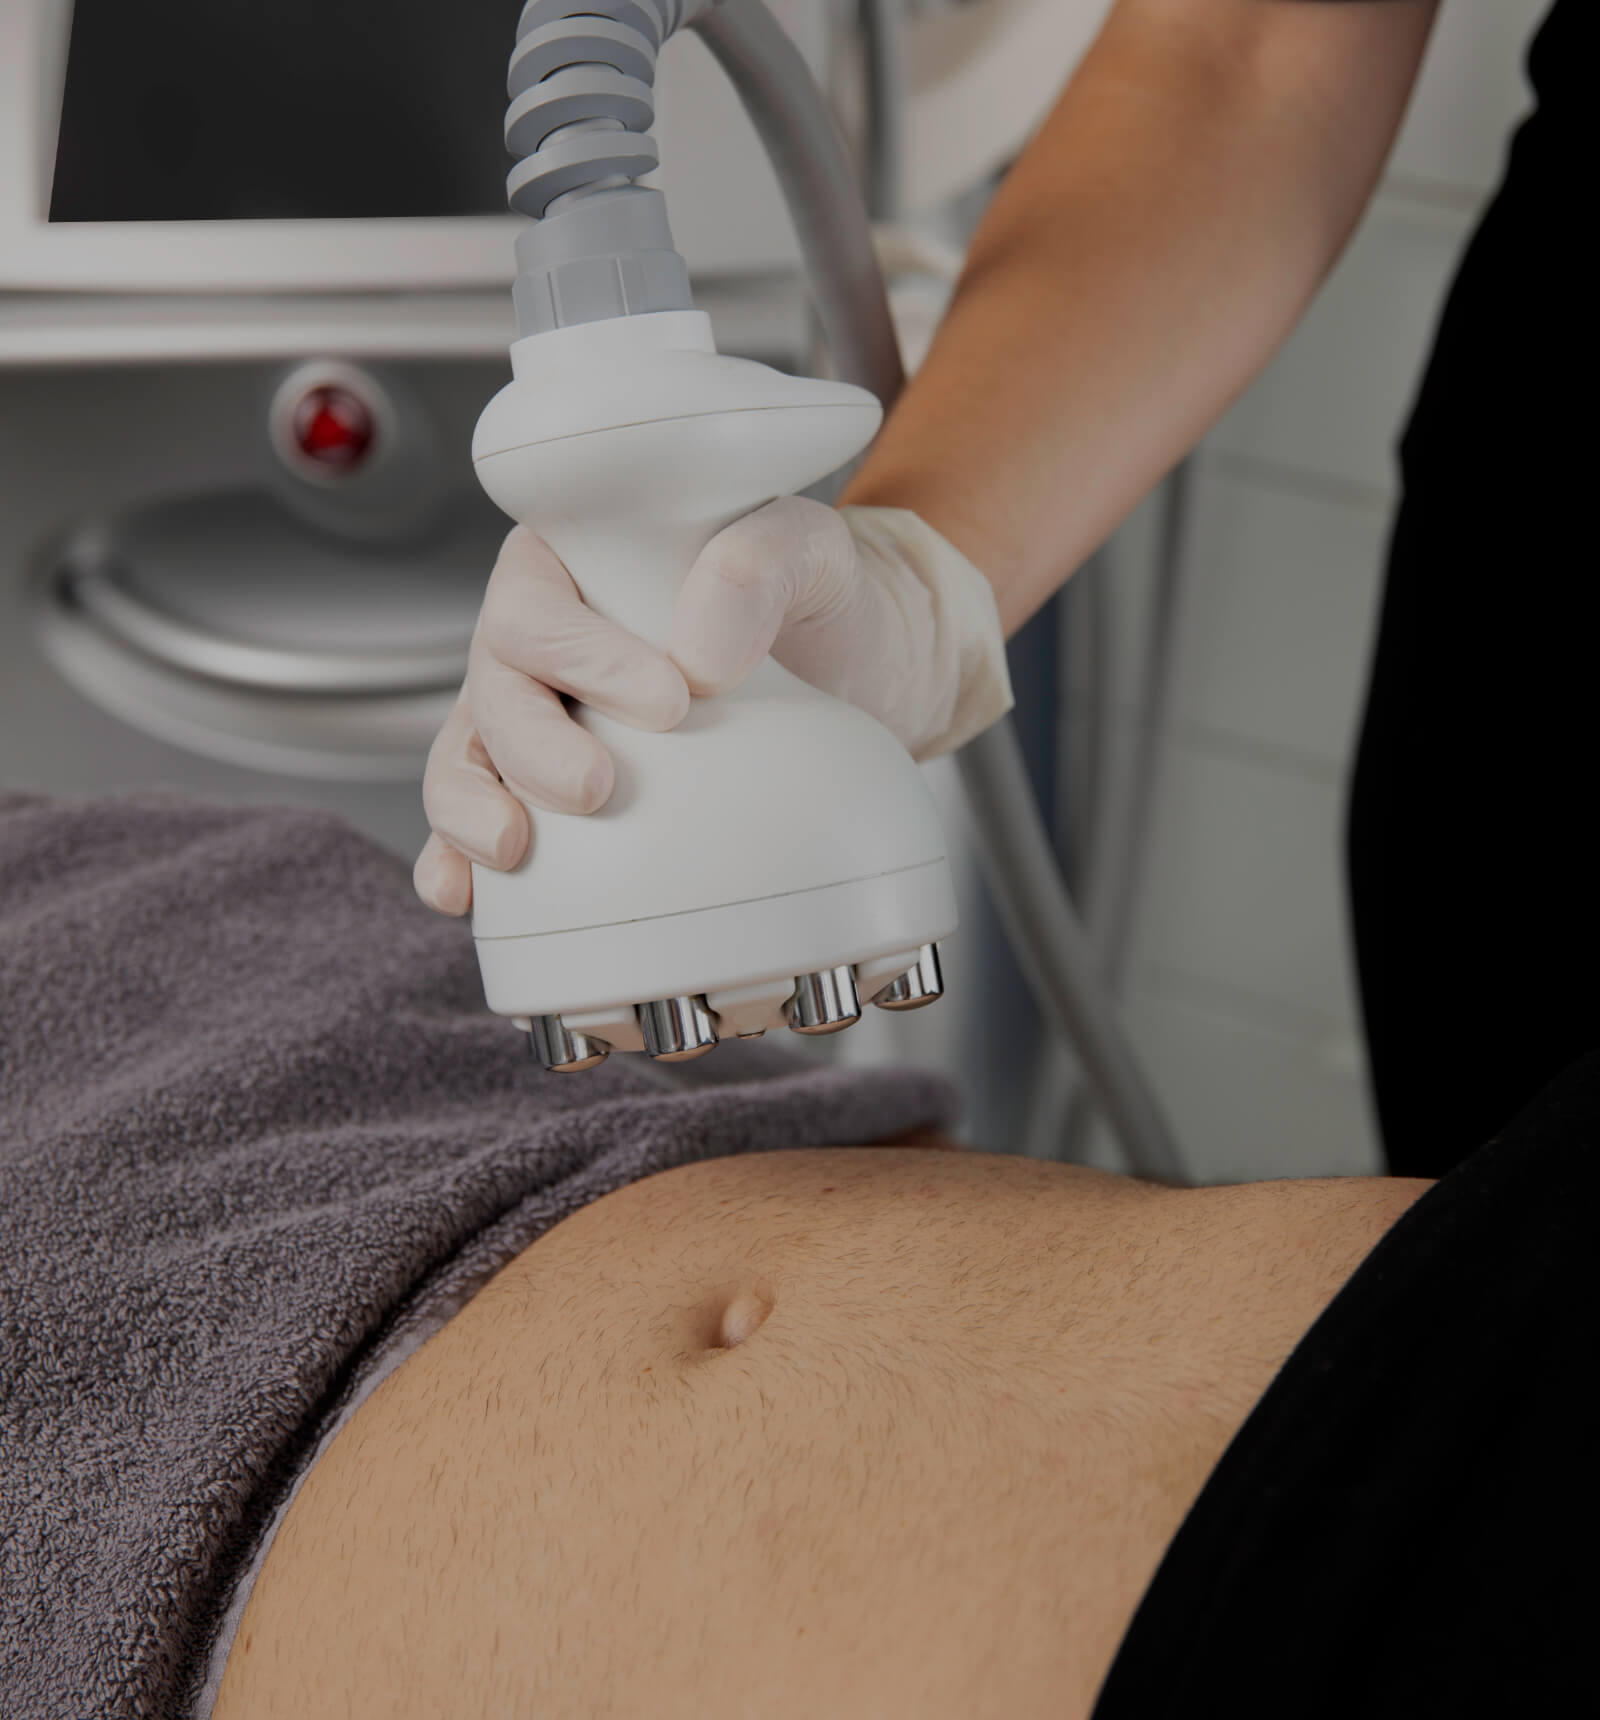 A medical aesthetic technician from Clinique Chloé holding the Venus Legacy handpiece above a patient's abdomen